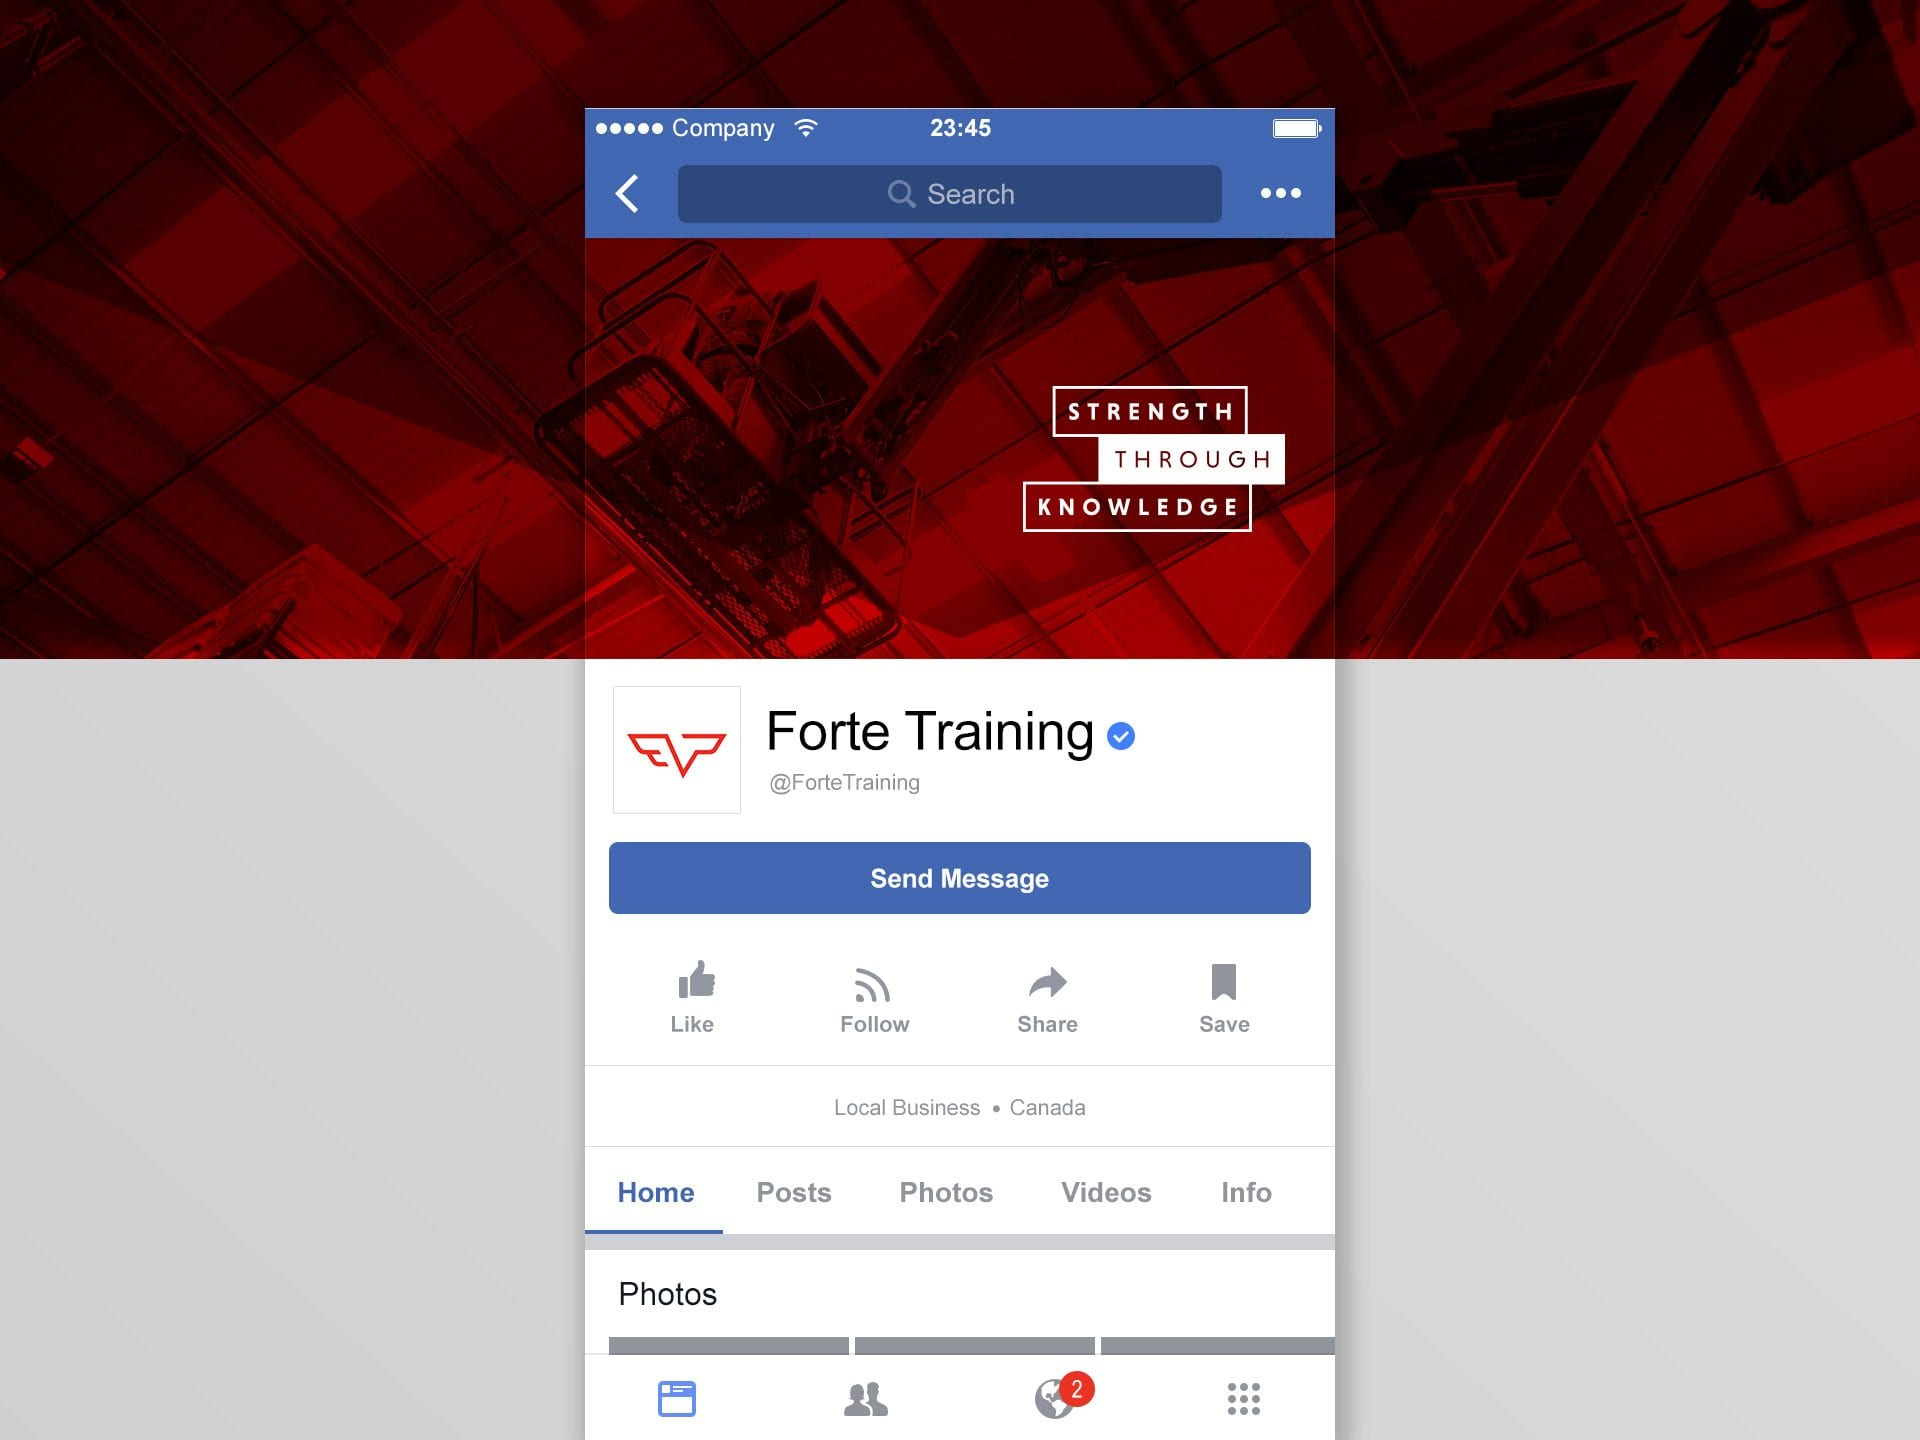 Y5 Creative Case Studies Forte Training 2019 Social Media Branding